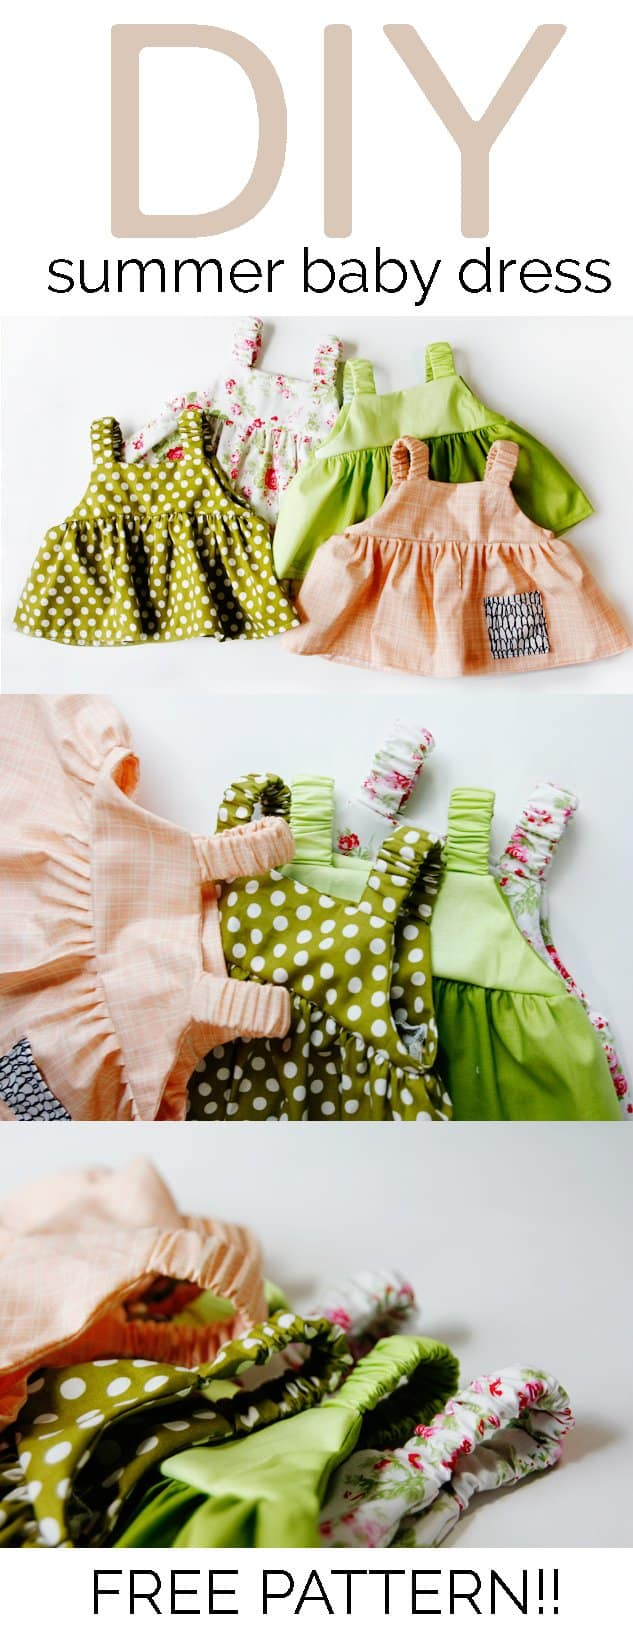 Simple summer dresses diy headboard